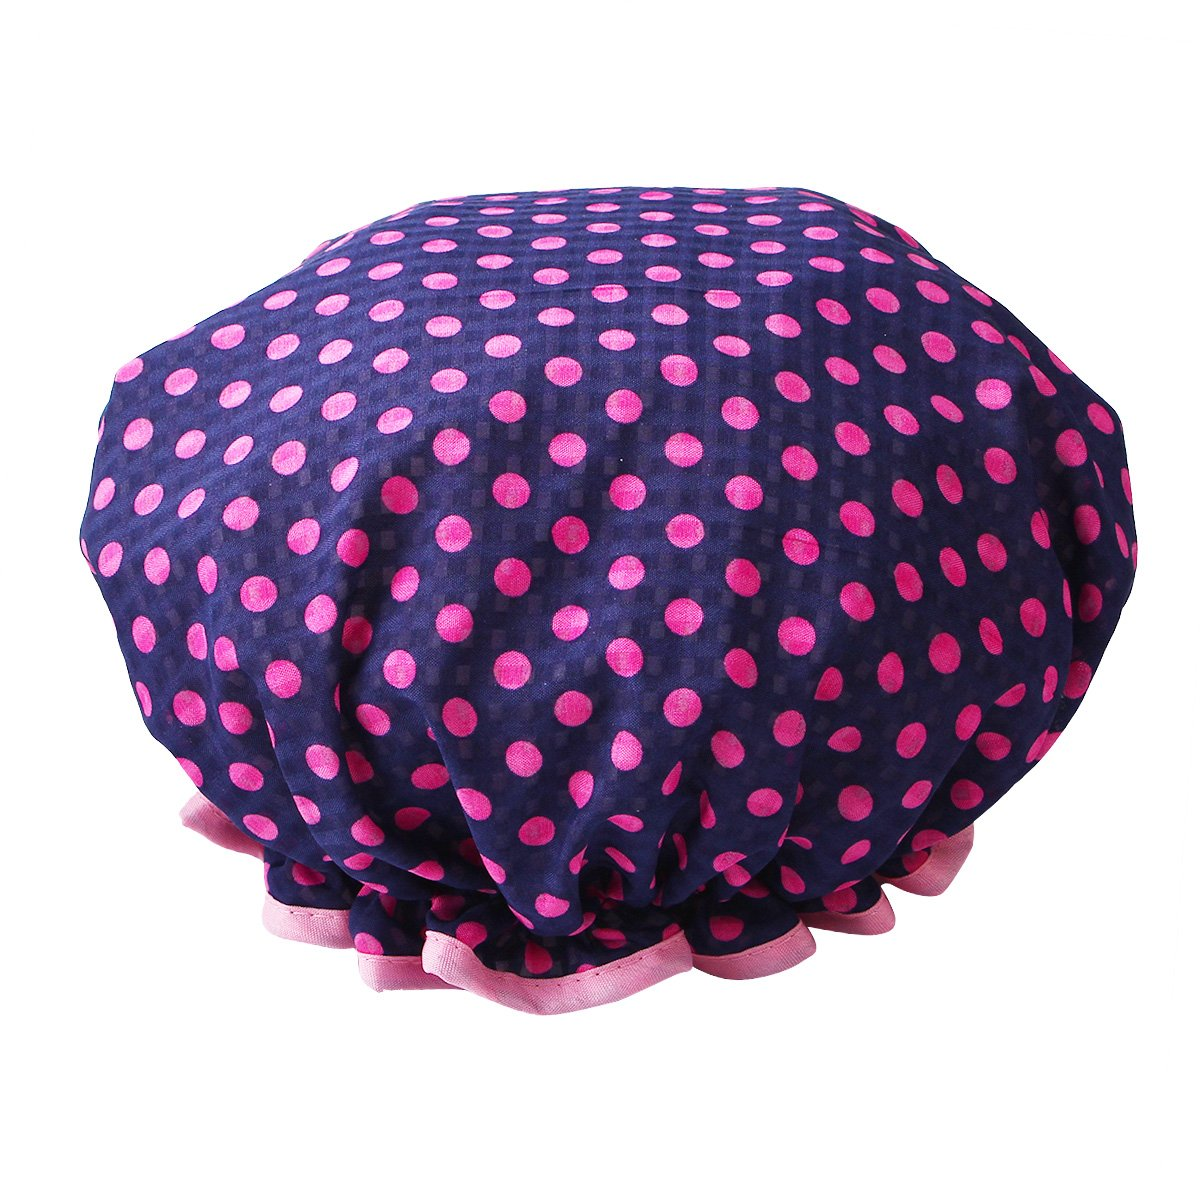 HiCollie Womens Cute Polka Dot Printed Double Layer Waterproof Shower Cap, Navy by Hicollie